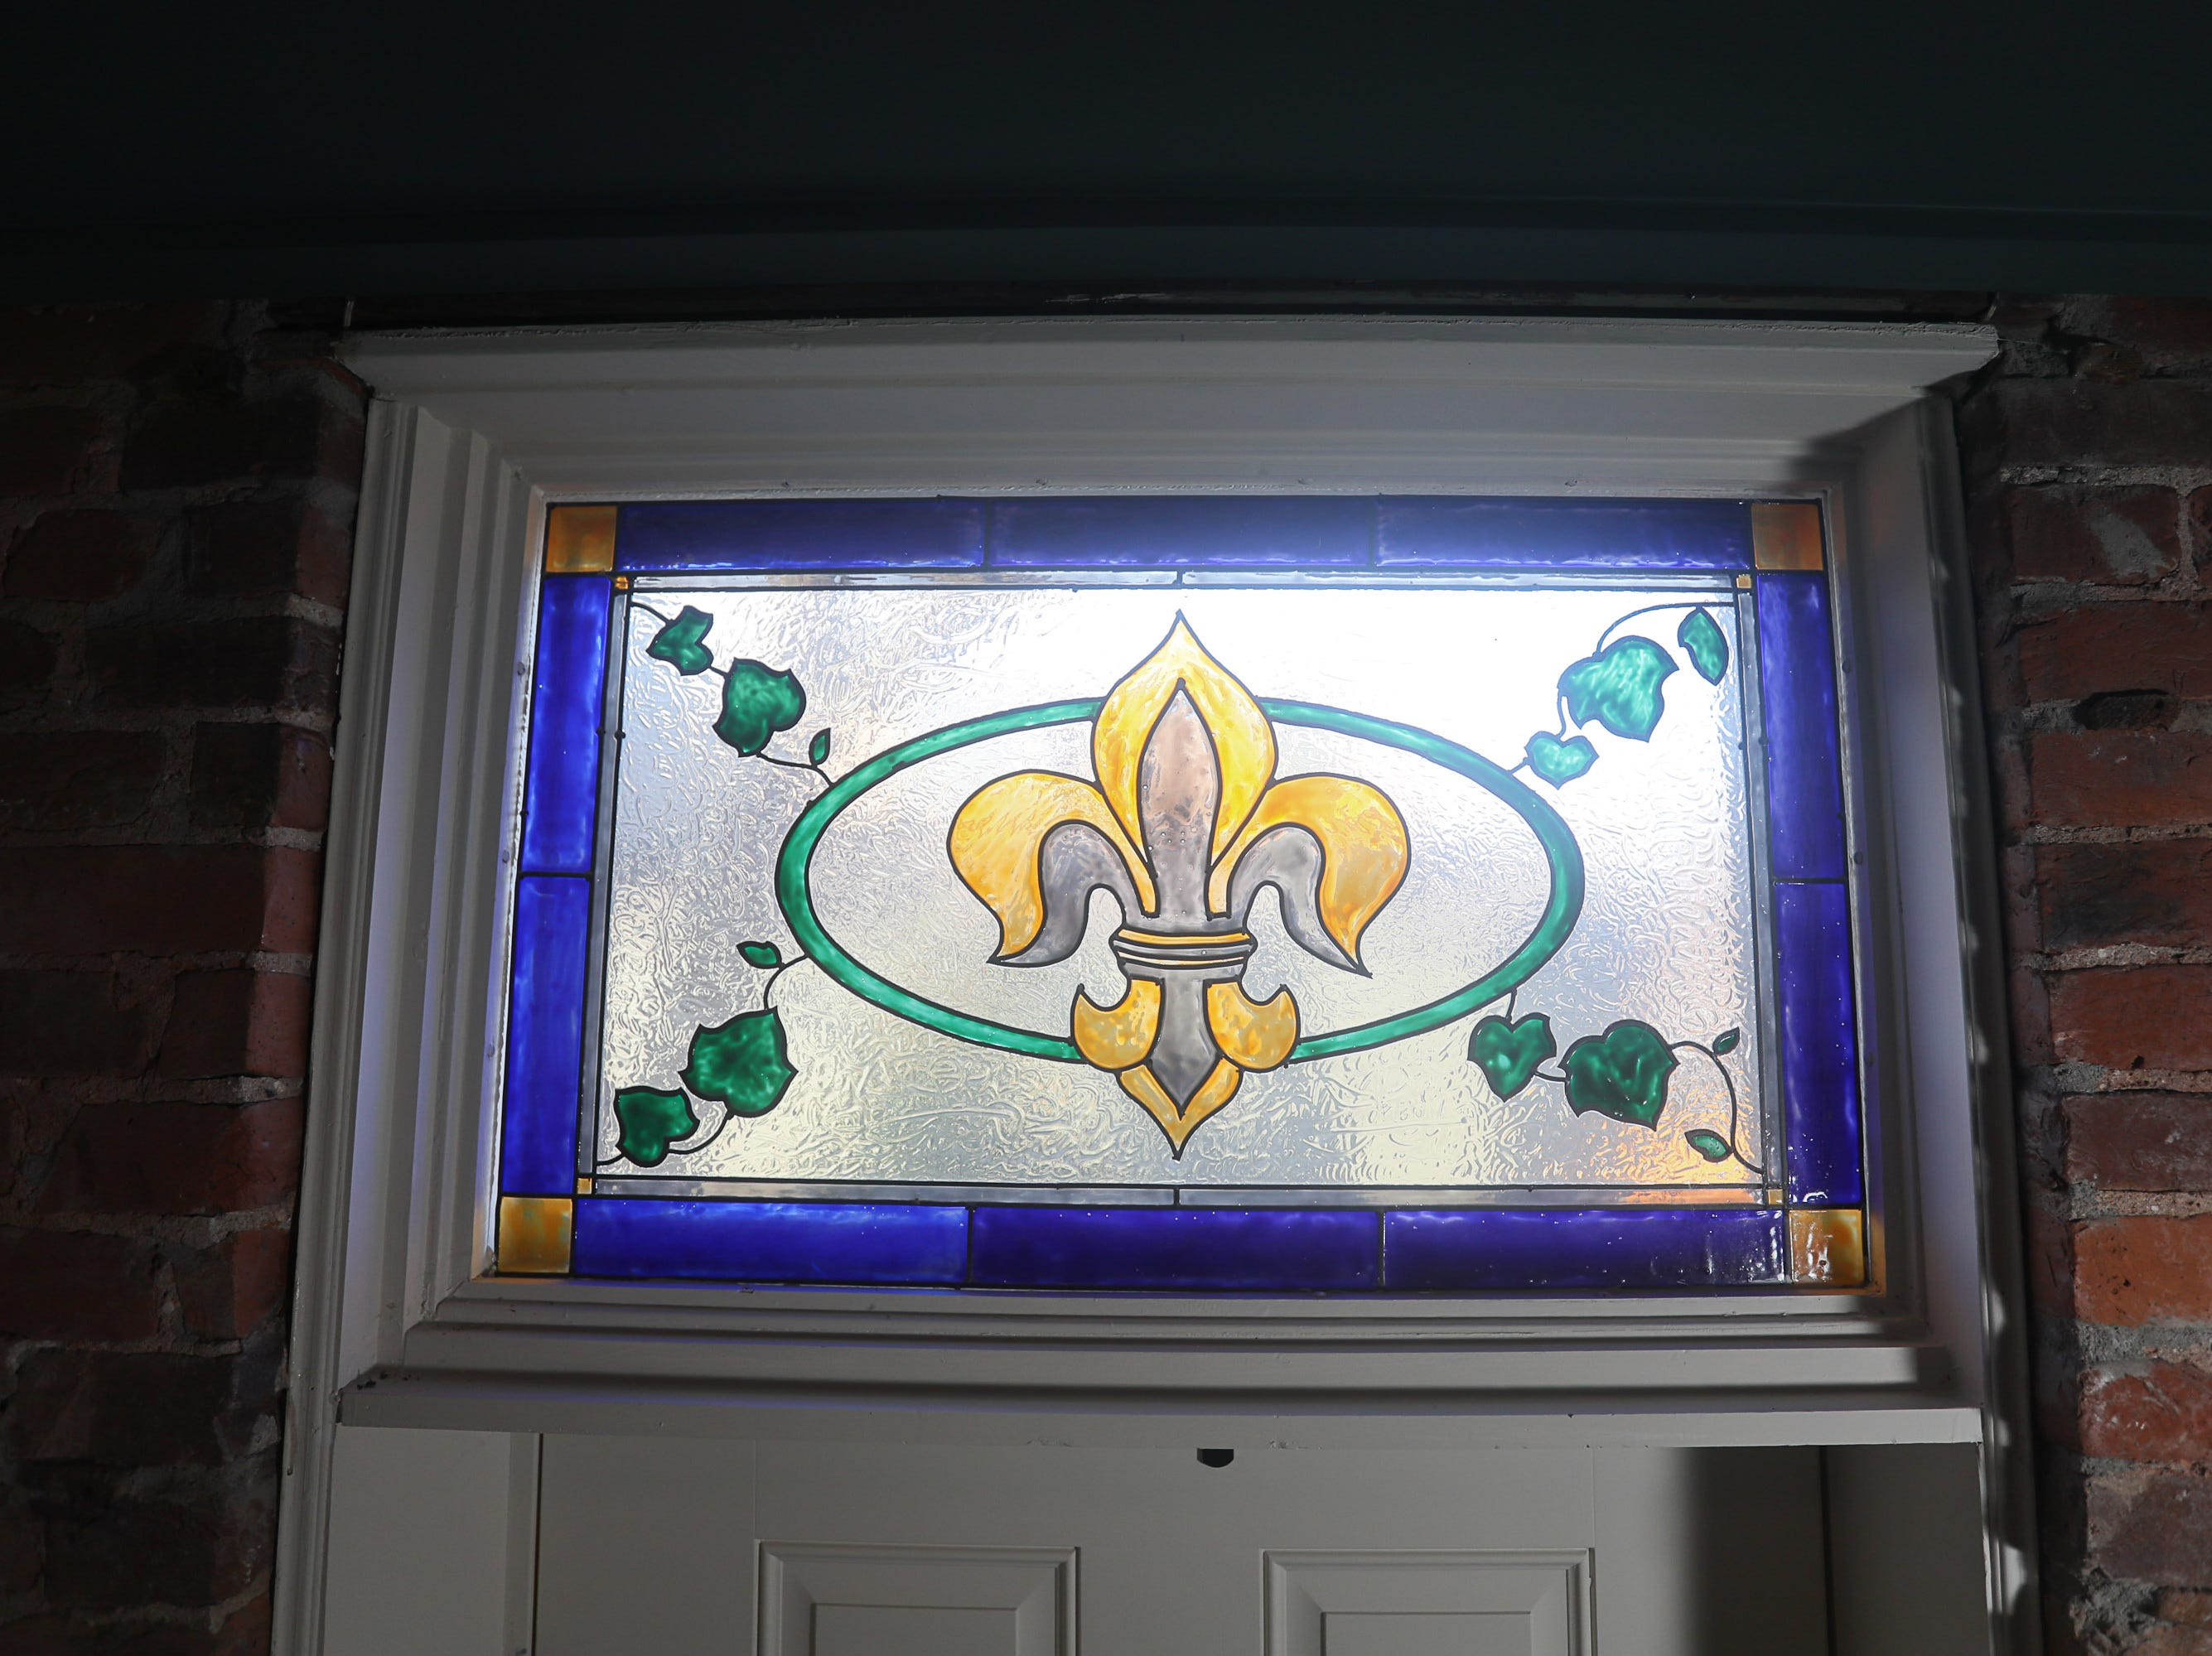 A stained glass transom over the entryway at the home of Kim Lesak in Louisville, KY. Dec. 18, 2018